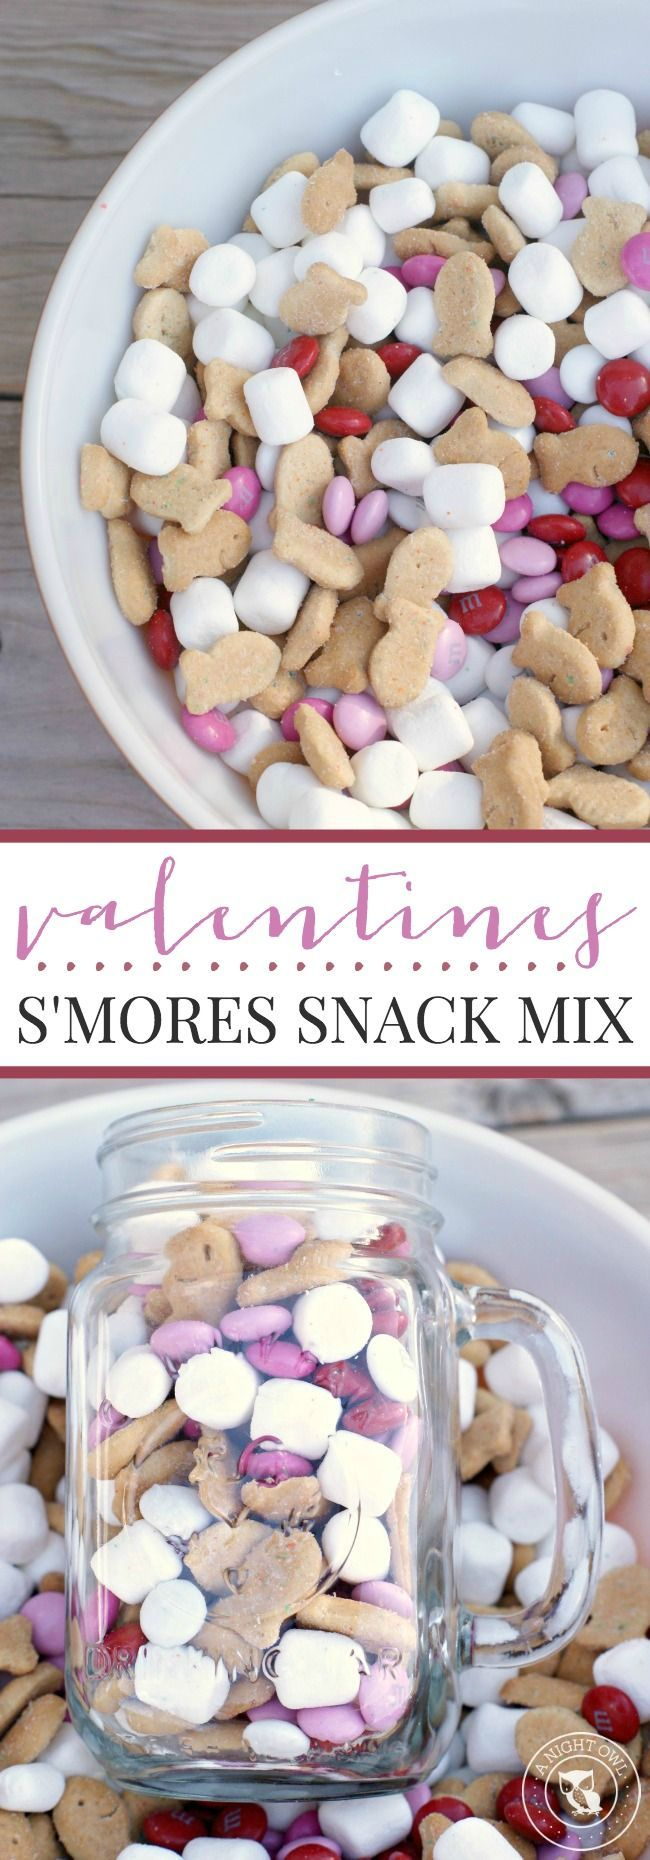 #marshmallow #combination #valentines #delicious #chocolate #festive #smores #graham #snack #mix #and #of #in #aValentines Smores Snack Mix - a delicious and festive combination of graham, chocolate and marshmallow in a snack mix!